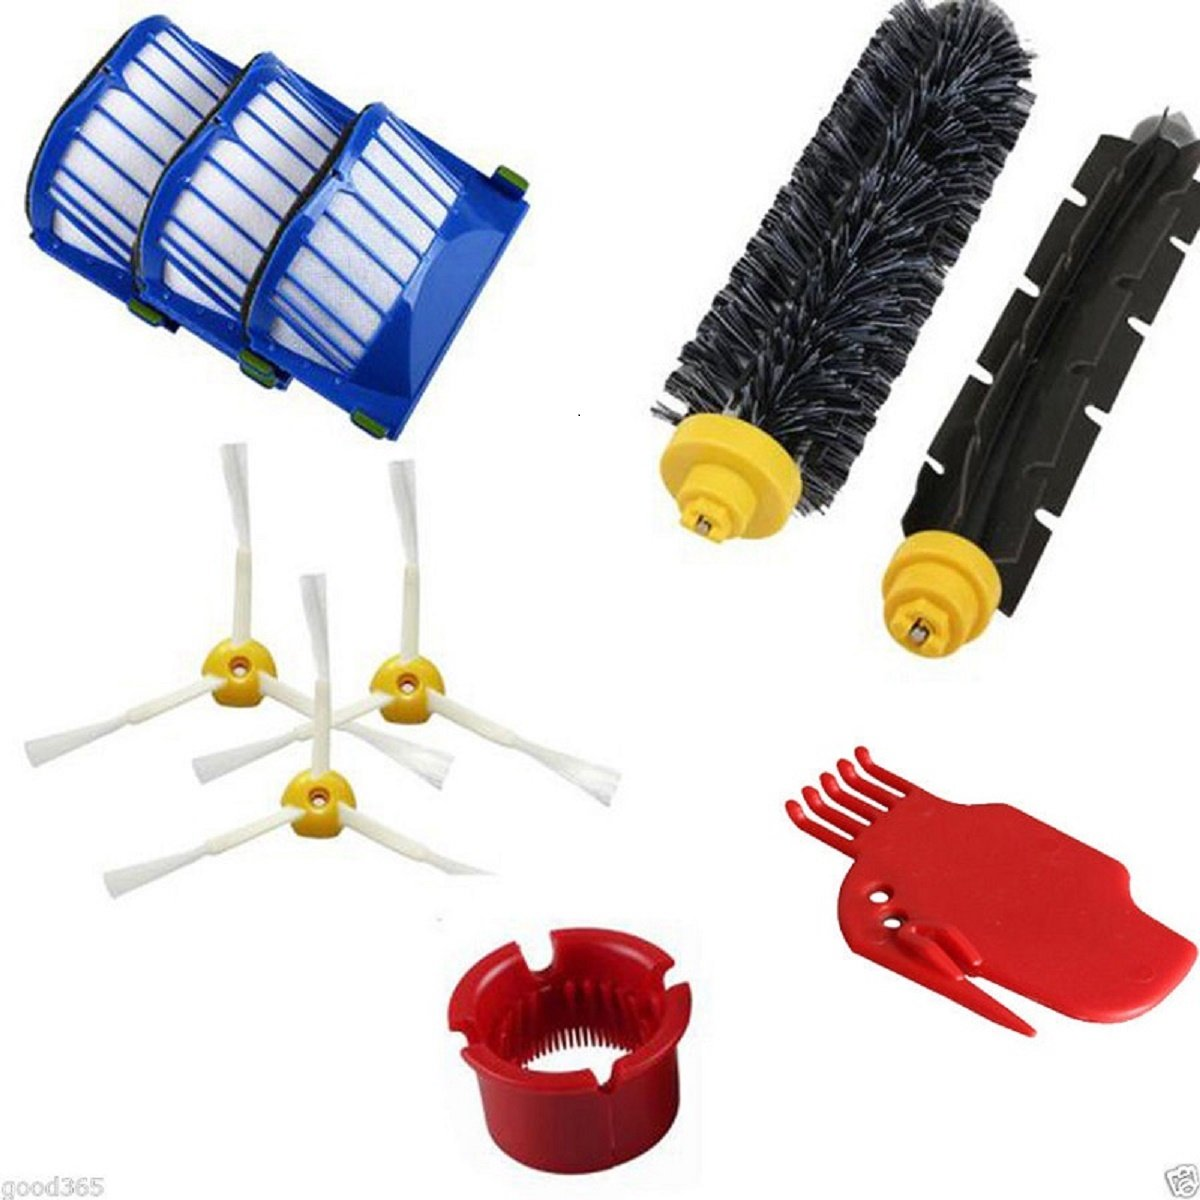 Excellent Quality Replacement Vacuum Part For 600 610 620 650 Series Vacuum Cleaner Part Kit